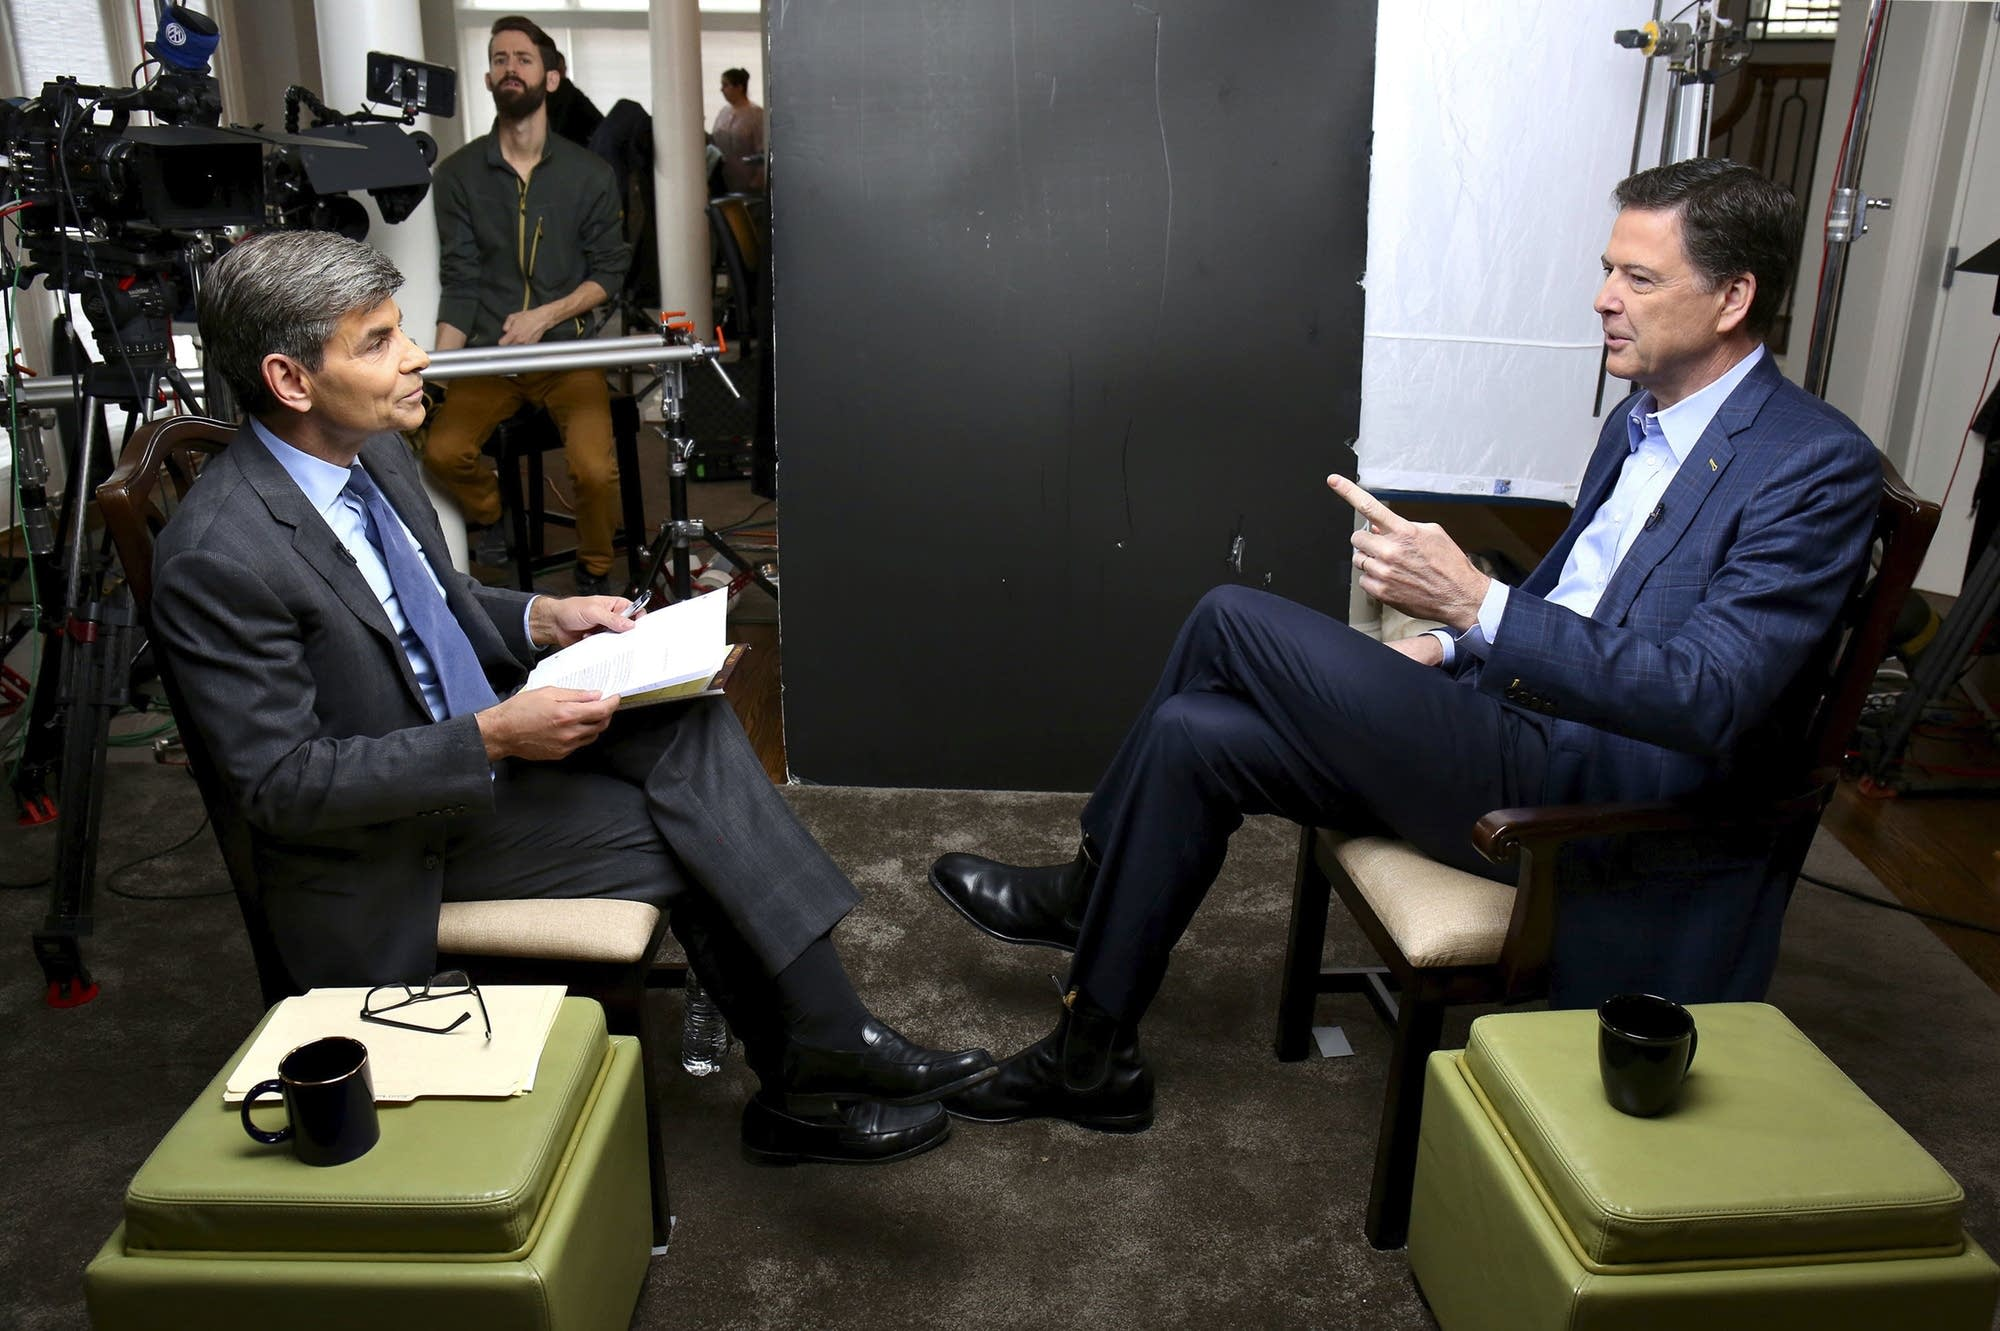 George Stephanopoulos, left, interviews former FBI director James Comey.